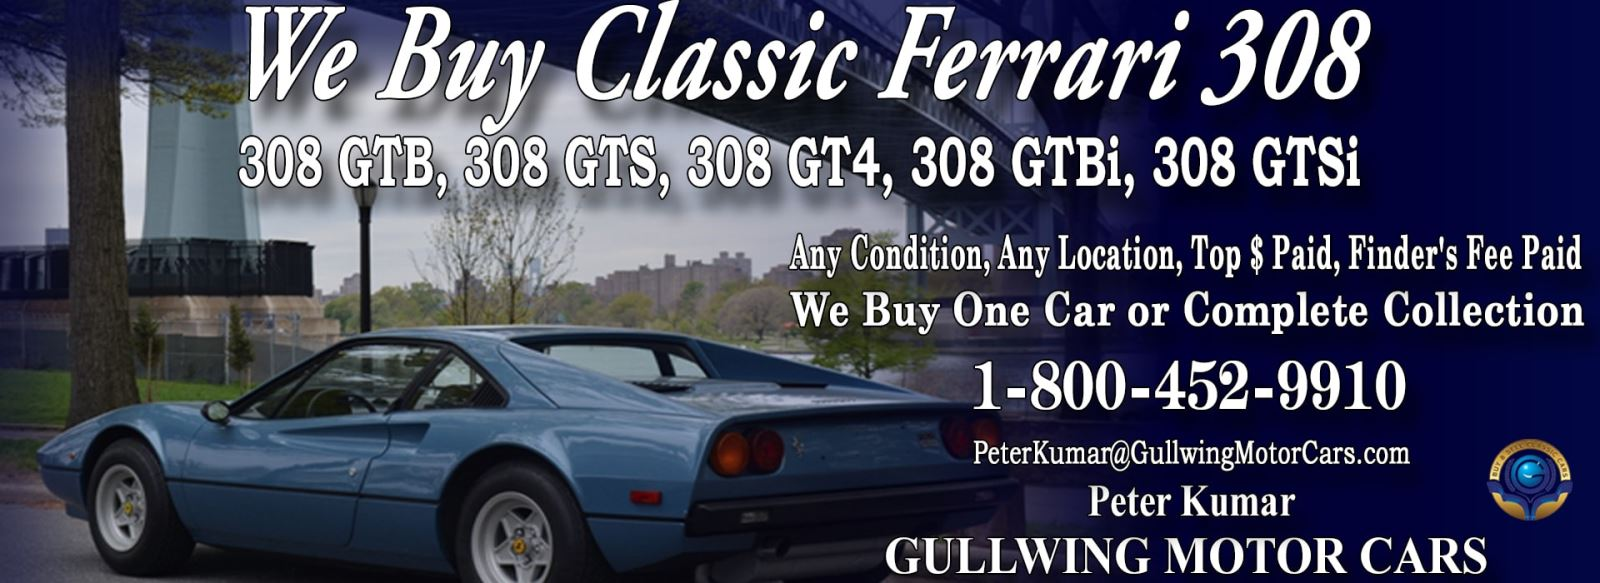 Classic Ferrari 308 GTB, 308GTS, 308GT4, 308GTBi, or 308GTSi for sale, we buy vintage Ferrari 308 GTB, 308GTS, 308GT4, 308GTBi, or 308GTSi. Call Peter Kumar. Gullwing Motor